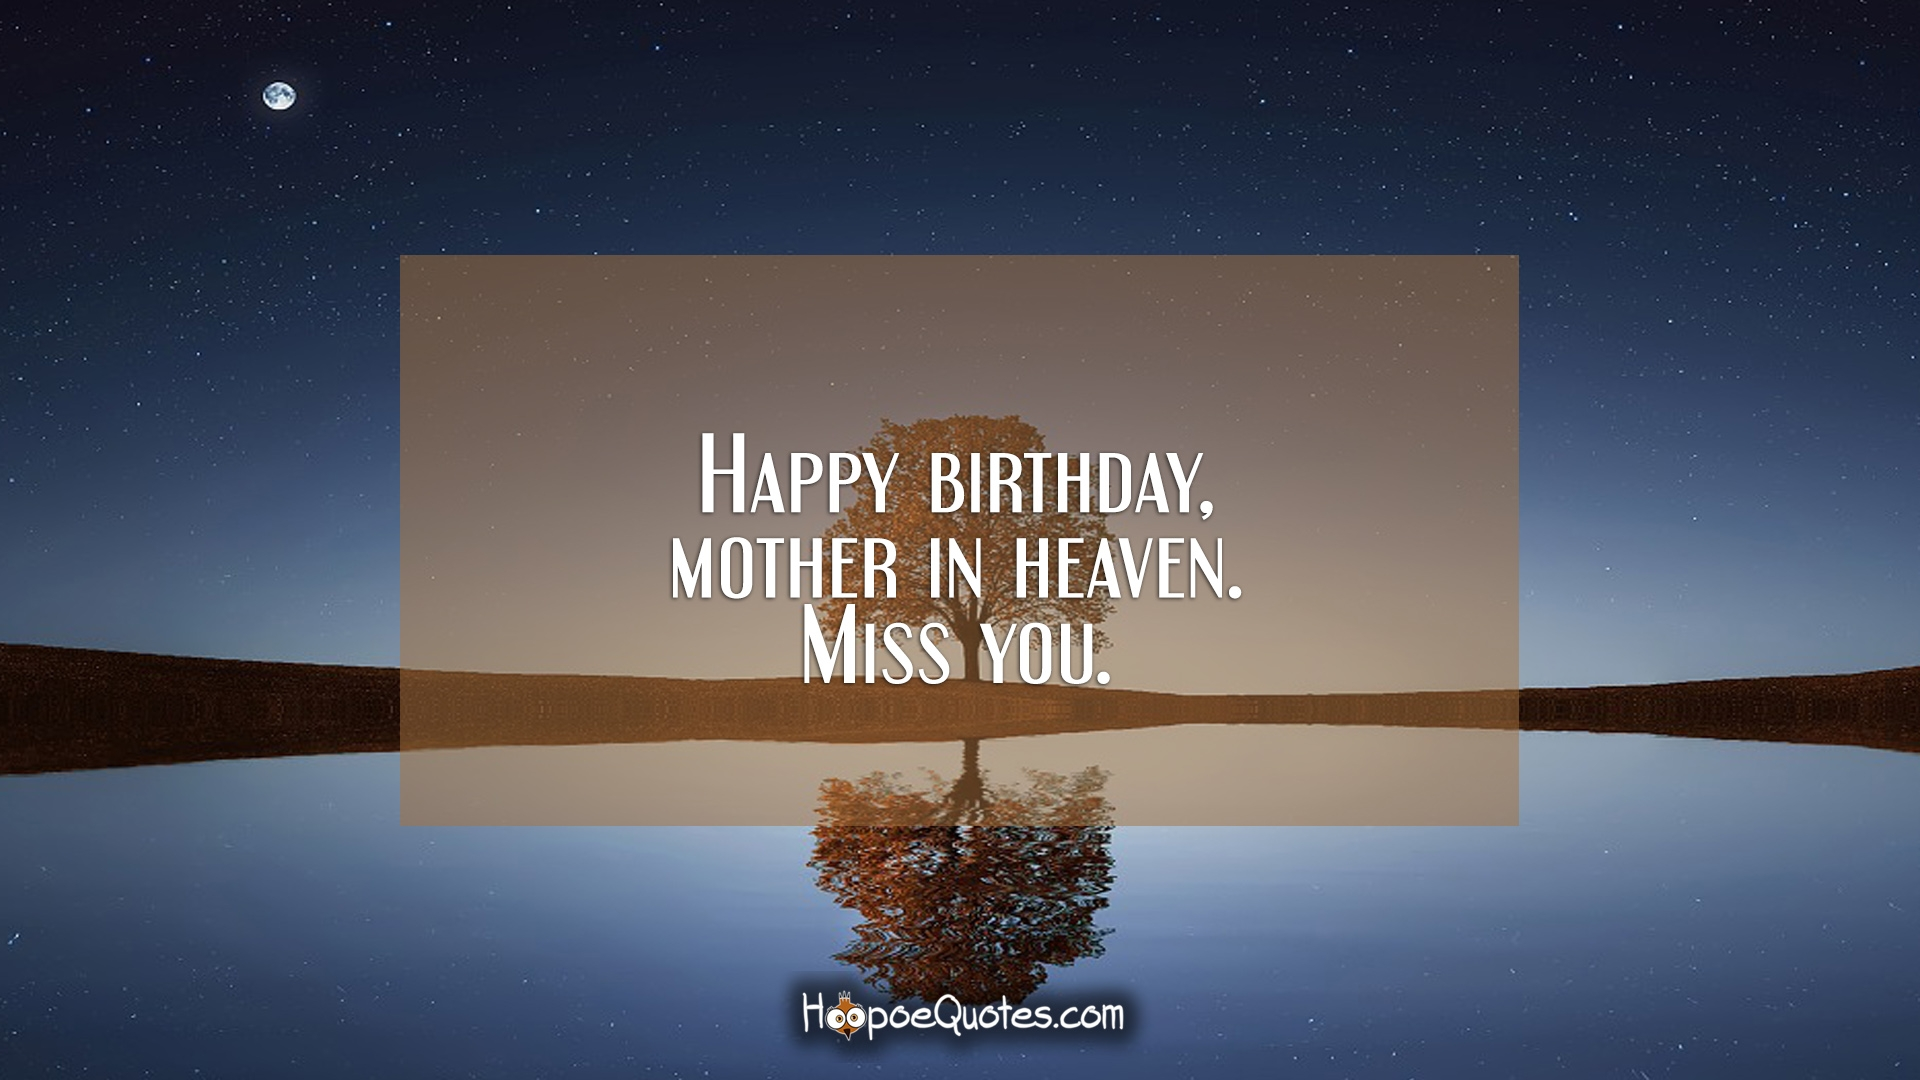 Happy Birthday Mother In Heaven Miss You Hoopoequotes